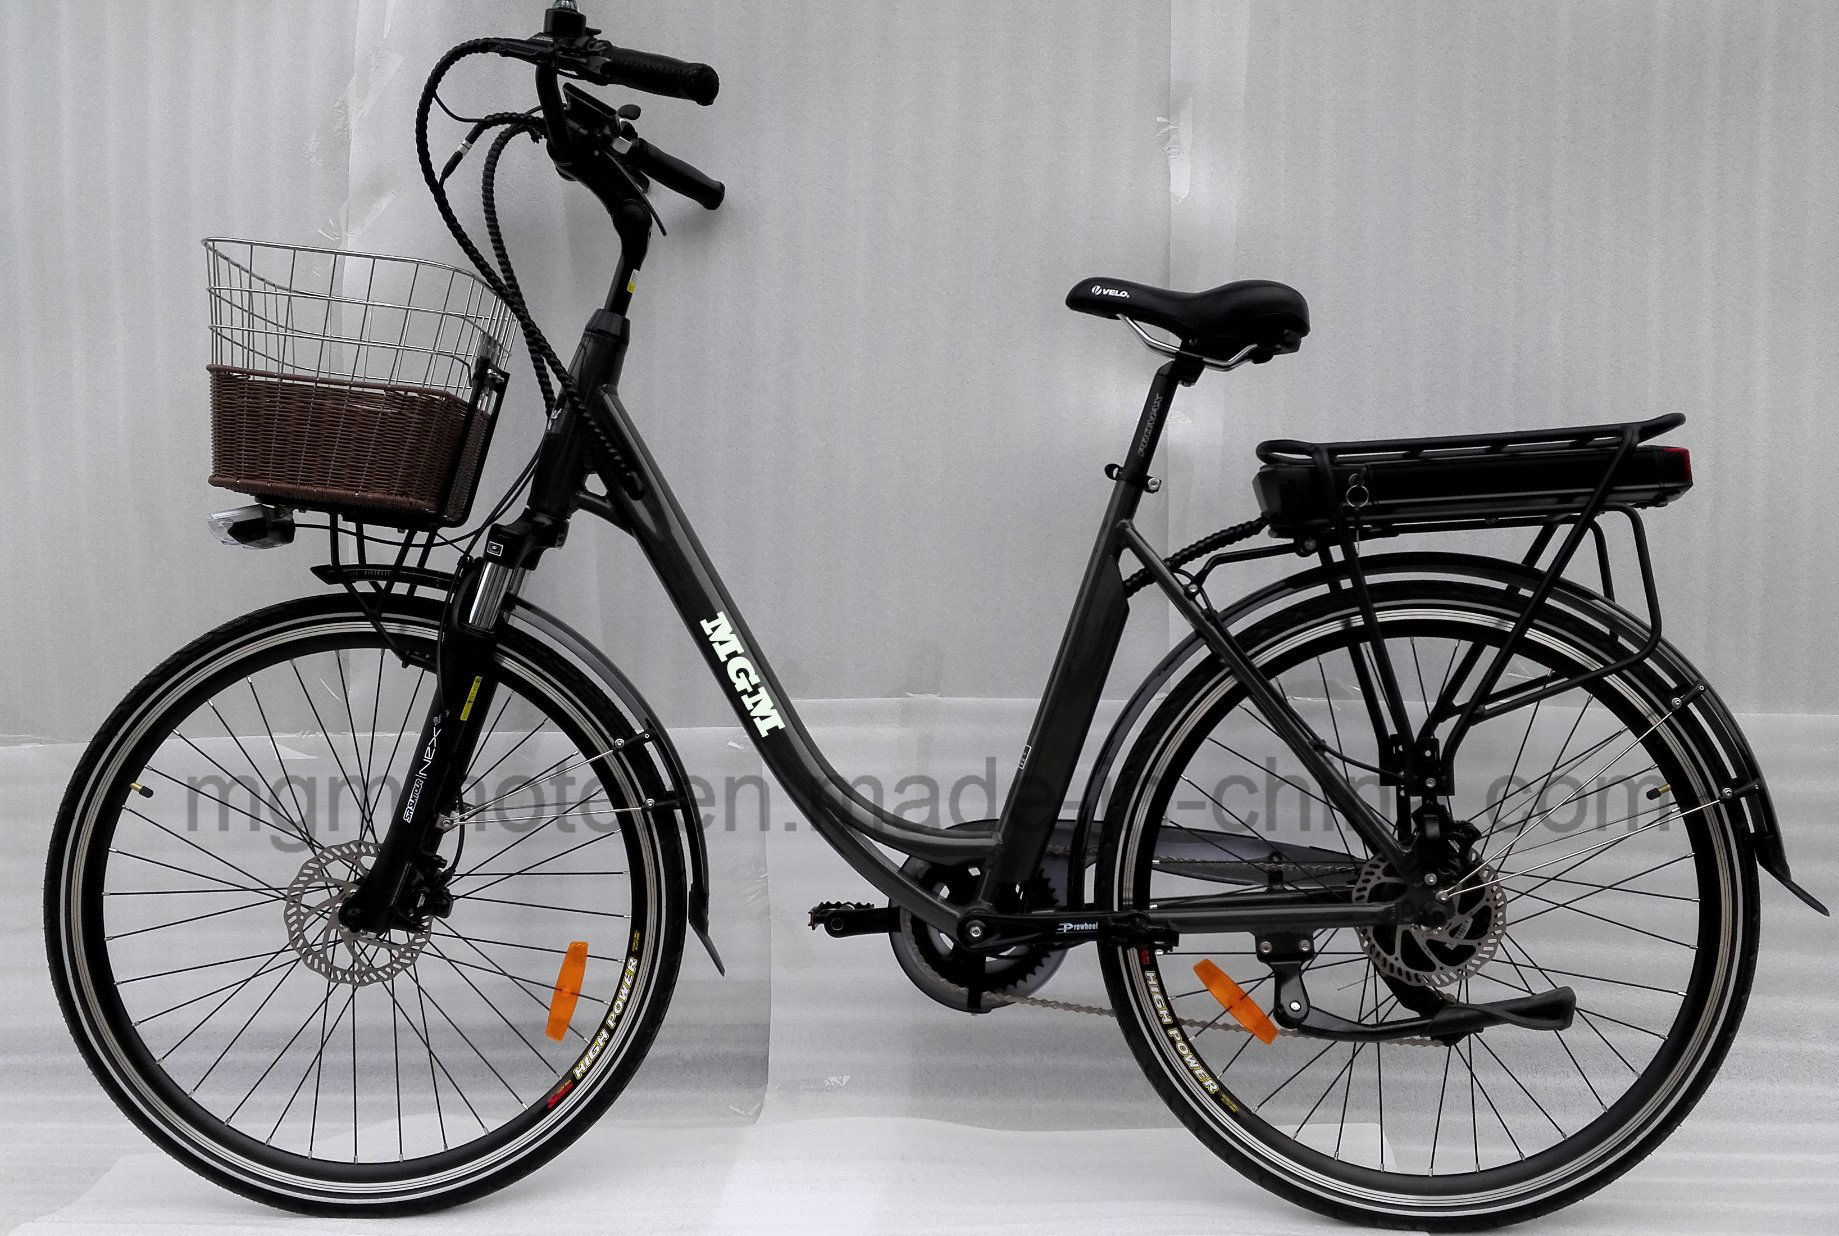 700c--28inch City Electric Bike with Big Battery